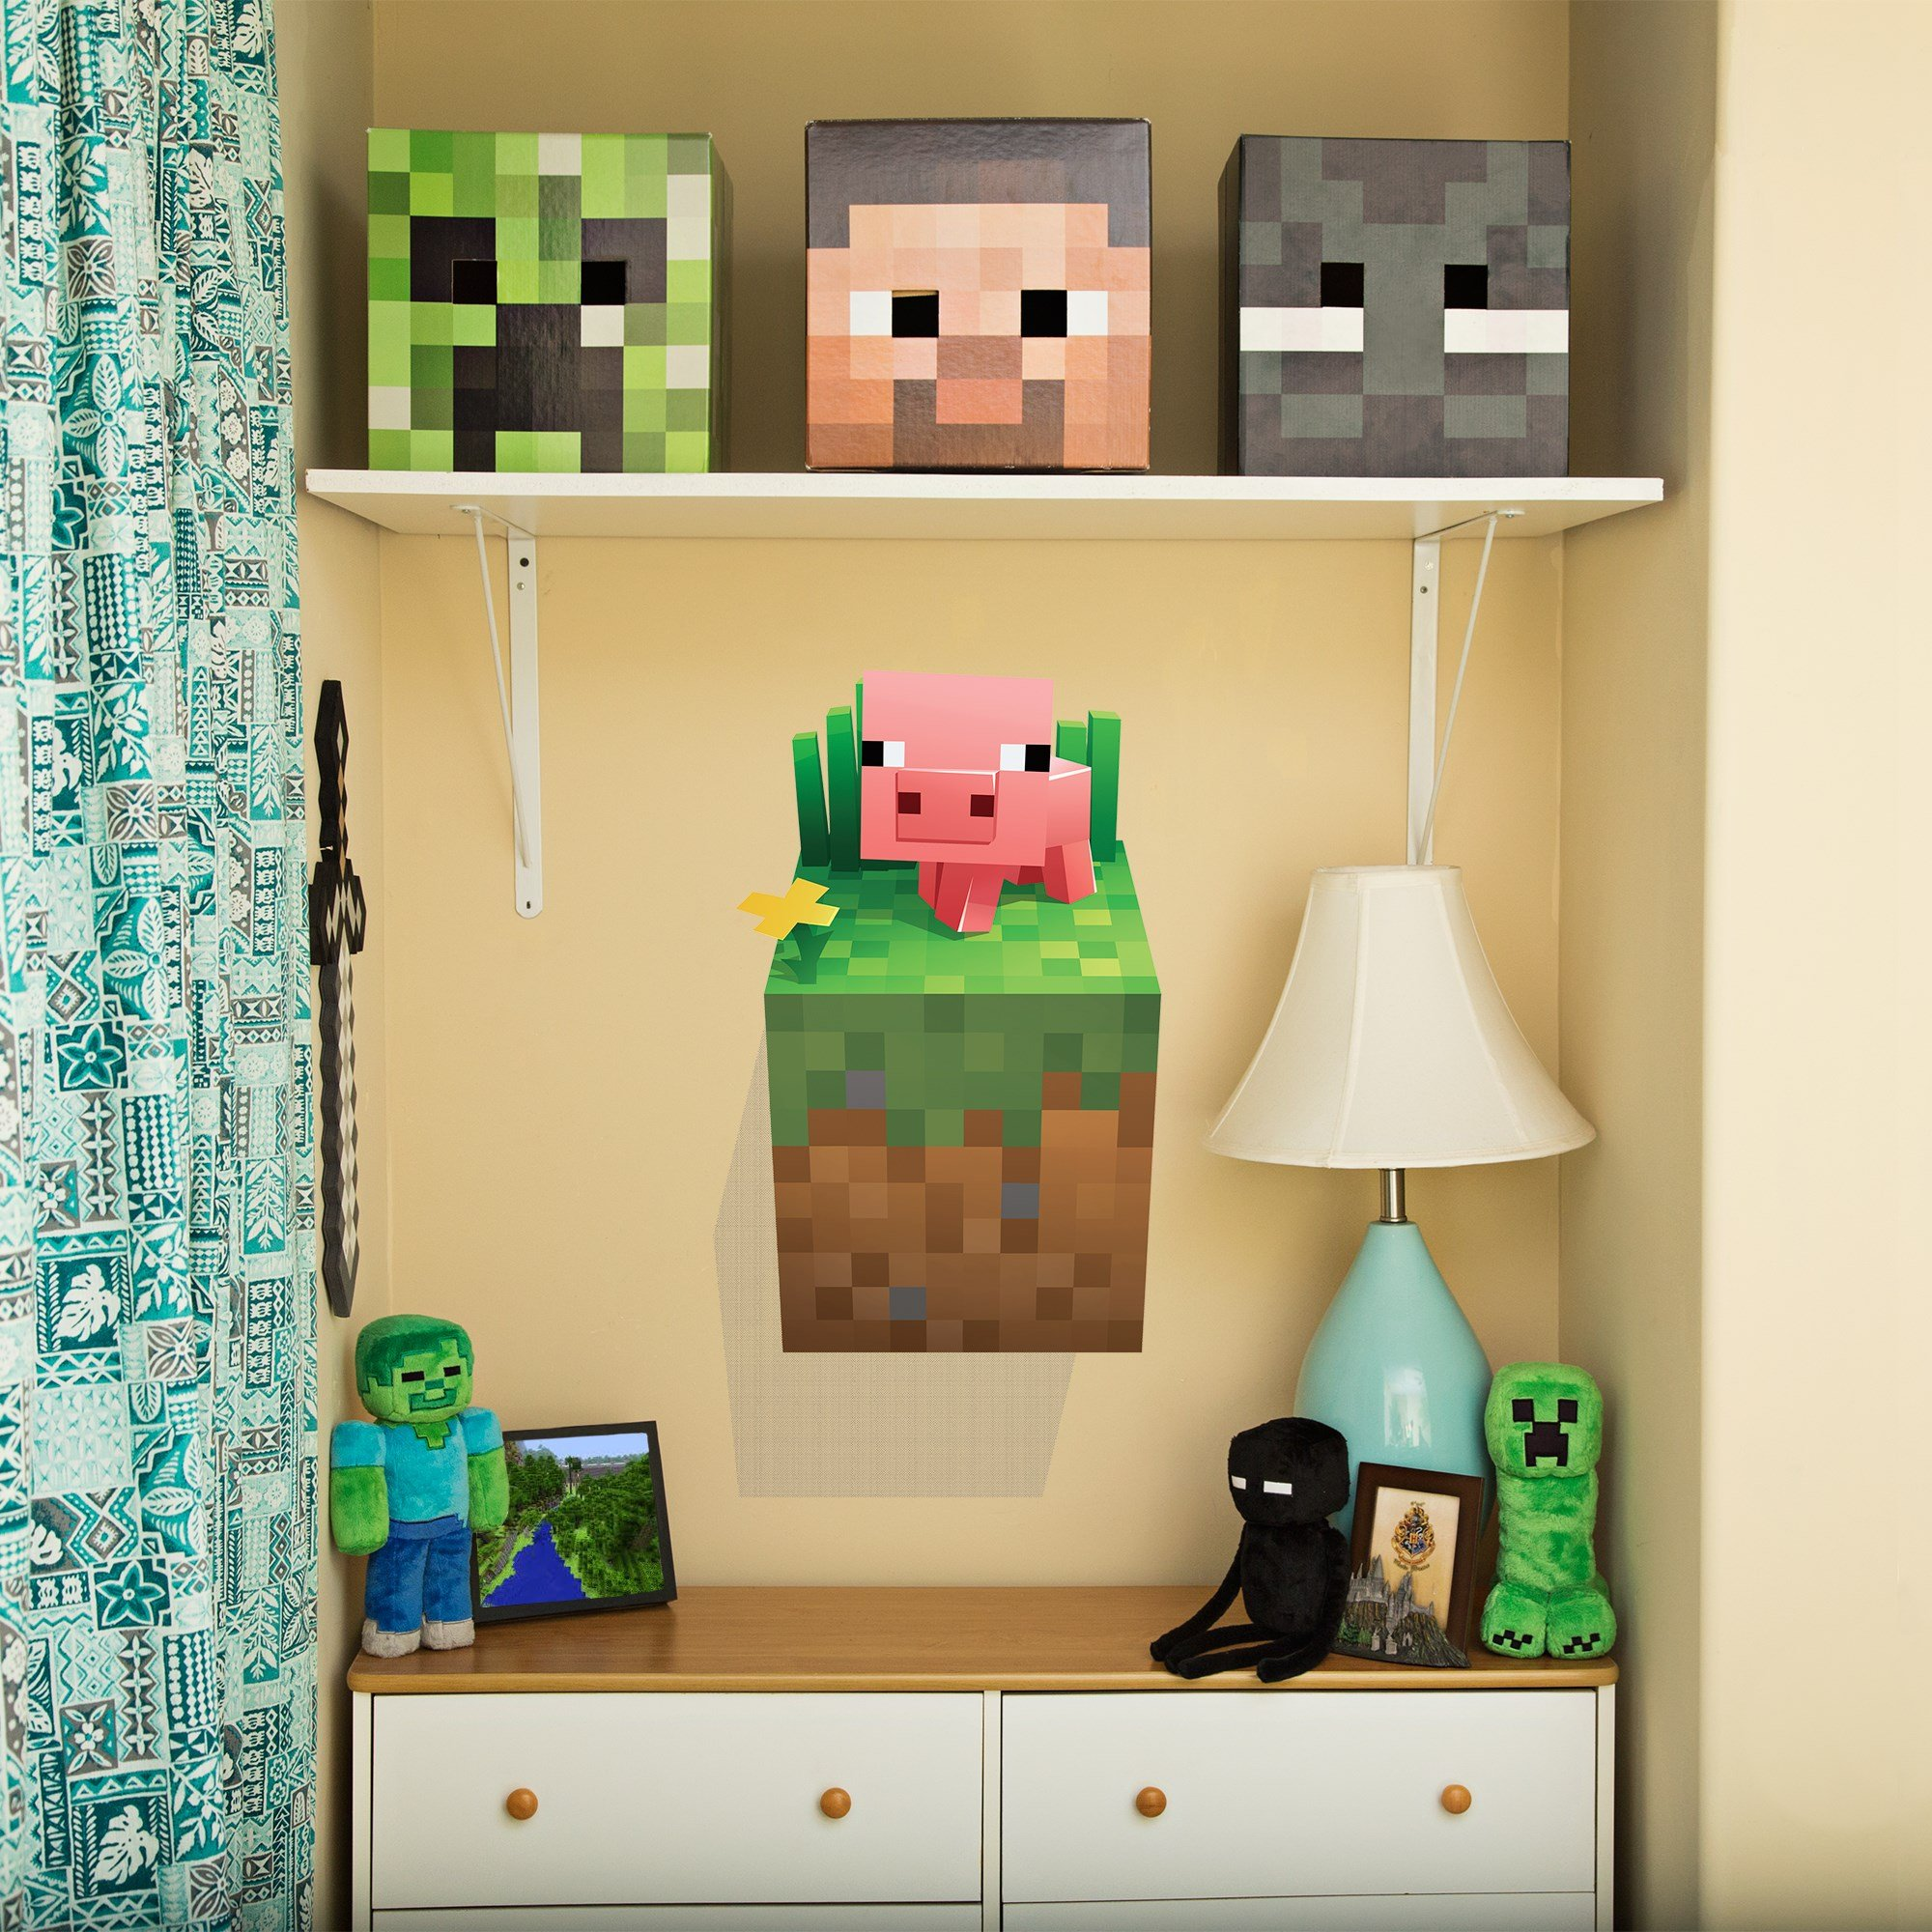 JINX Minecraft Wall Cling Decal Set (Creeper, Enderman, Pig, Cow) by JINX (Image #5)